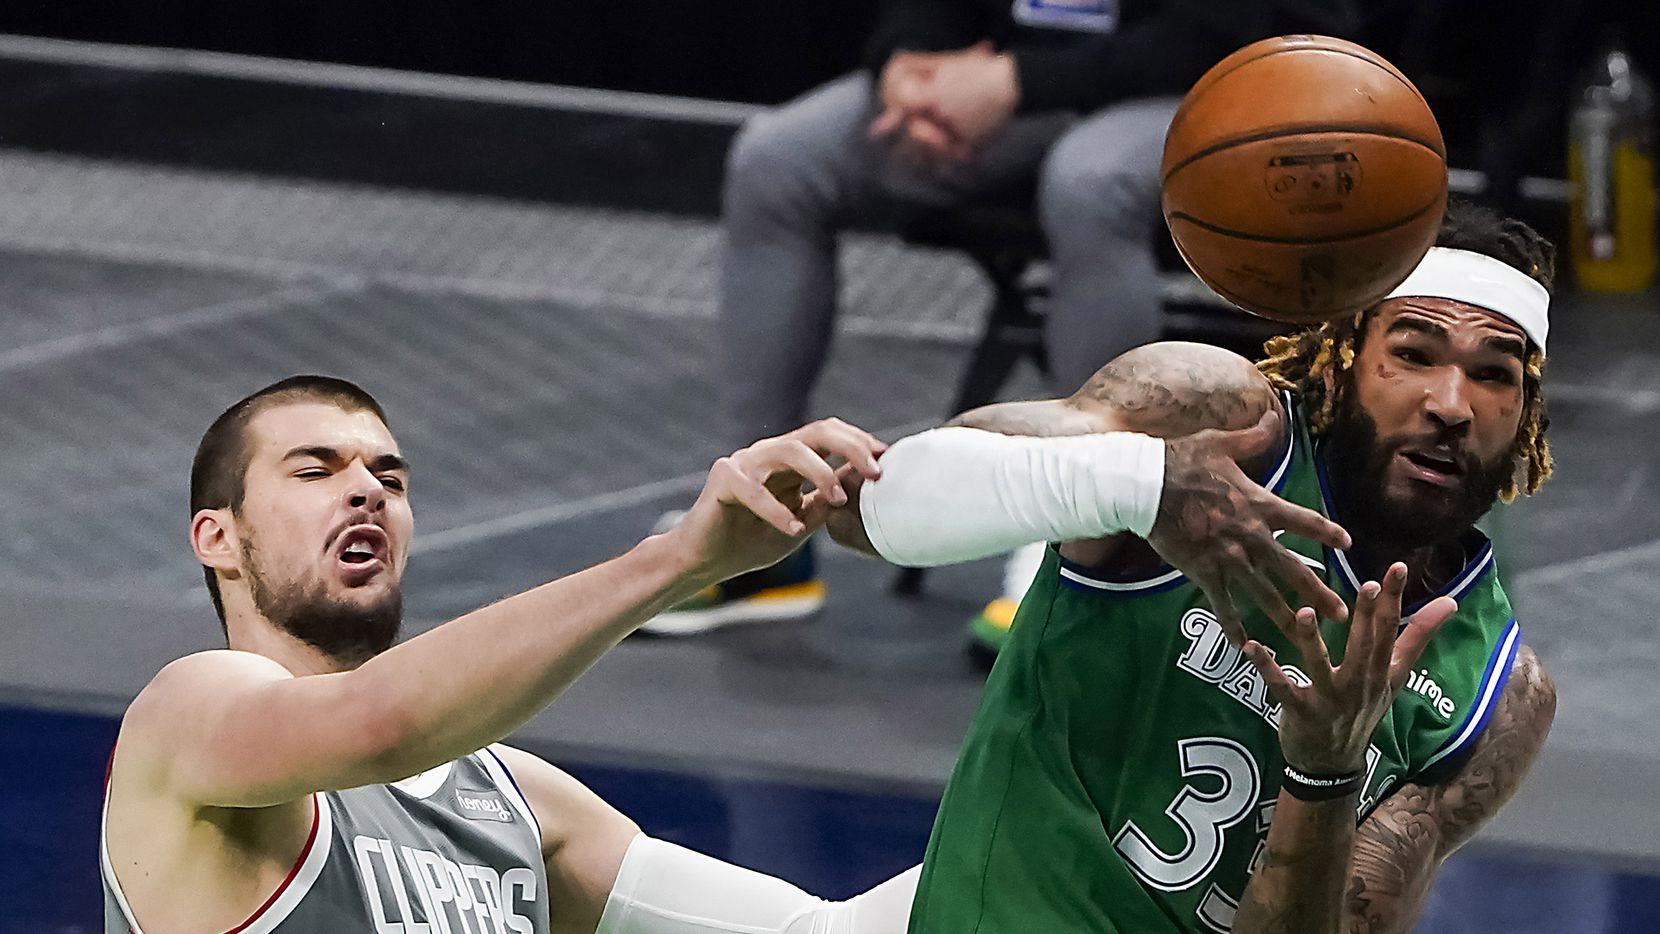 Dallas Mavericks center Willie Cauley-Stein (33) fights for a rebound against LA Clippers center Ivica Zubac (40) during the second quarter of an NBA basketball game at American Airlines Center on Wednesday, March 17, 2021, in Dallas.